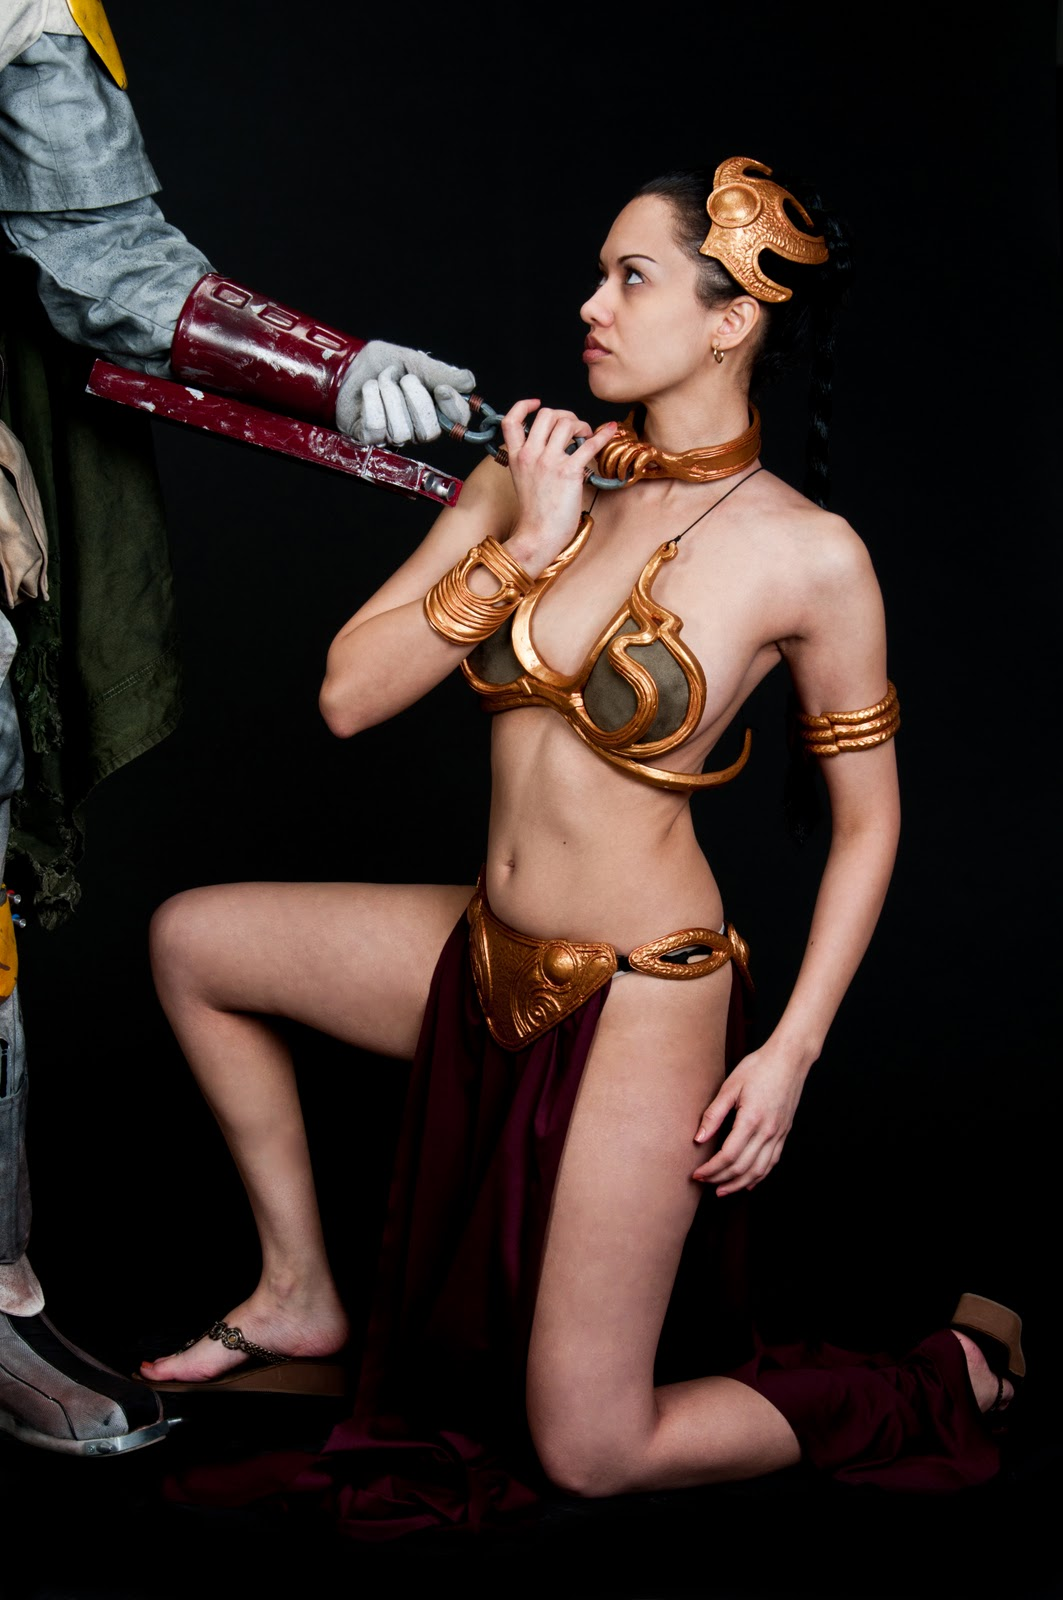 Star wars princess leia slave cosplay well